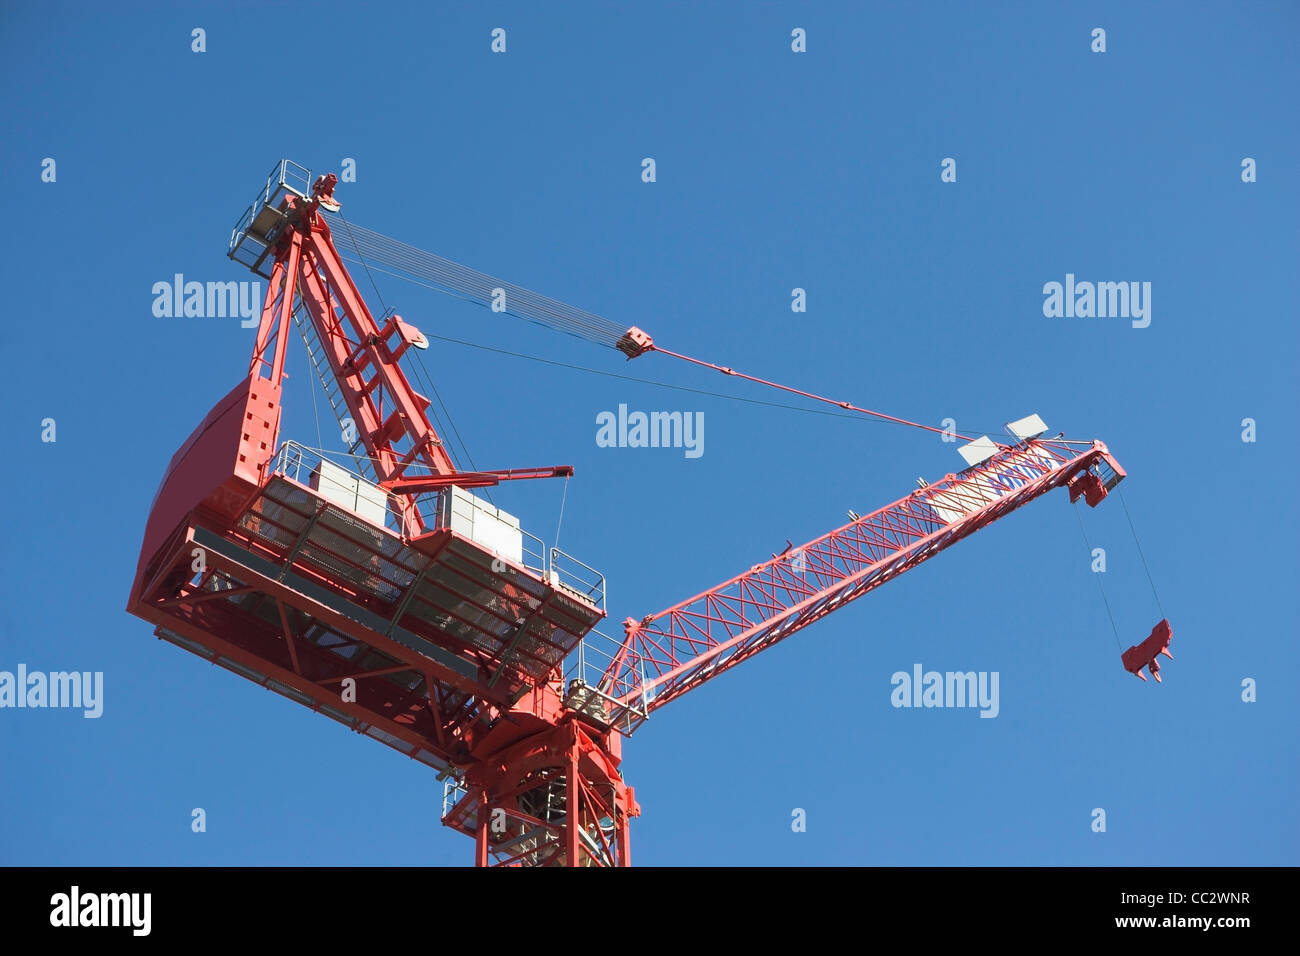 USA, New York City, Low angle view of industrial crane - Stock Image